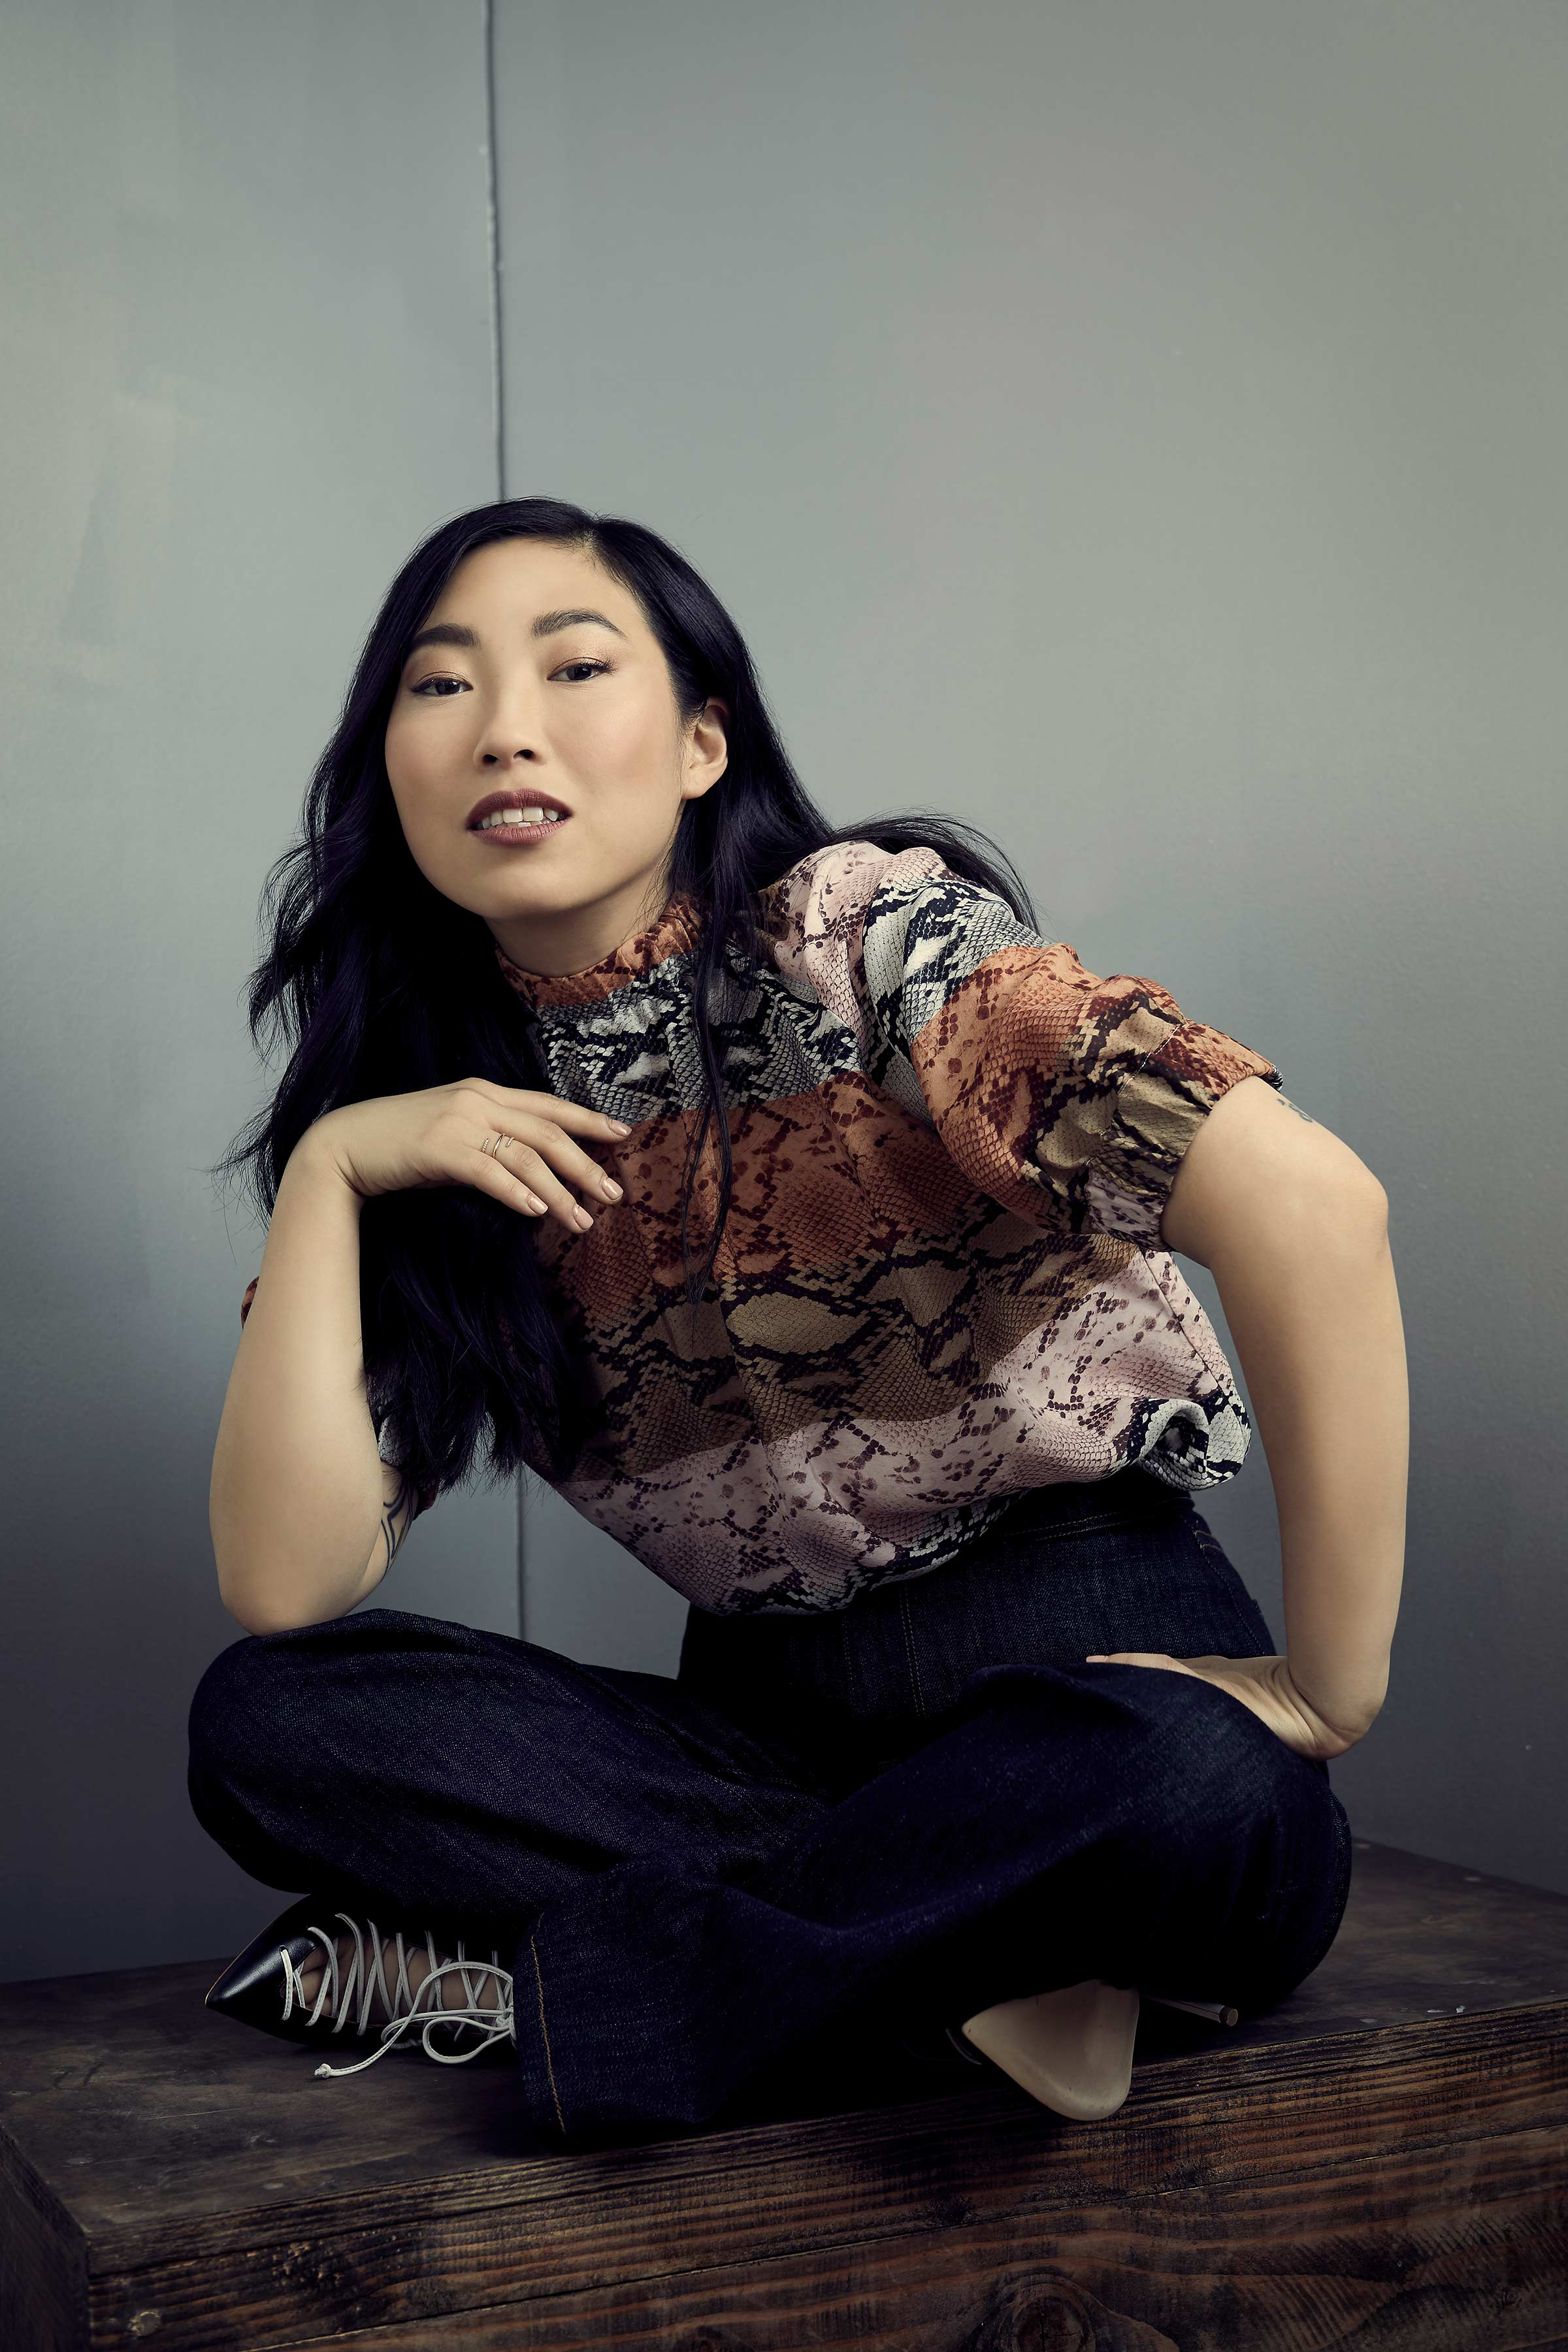 JSquared_GettyPeople_AwkwafinaIsNoraFromQueens_Awkwafina_2008F-copy